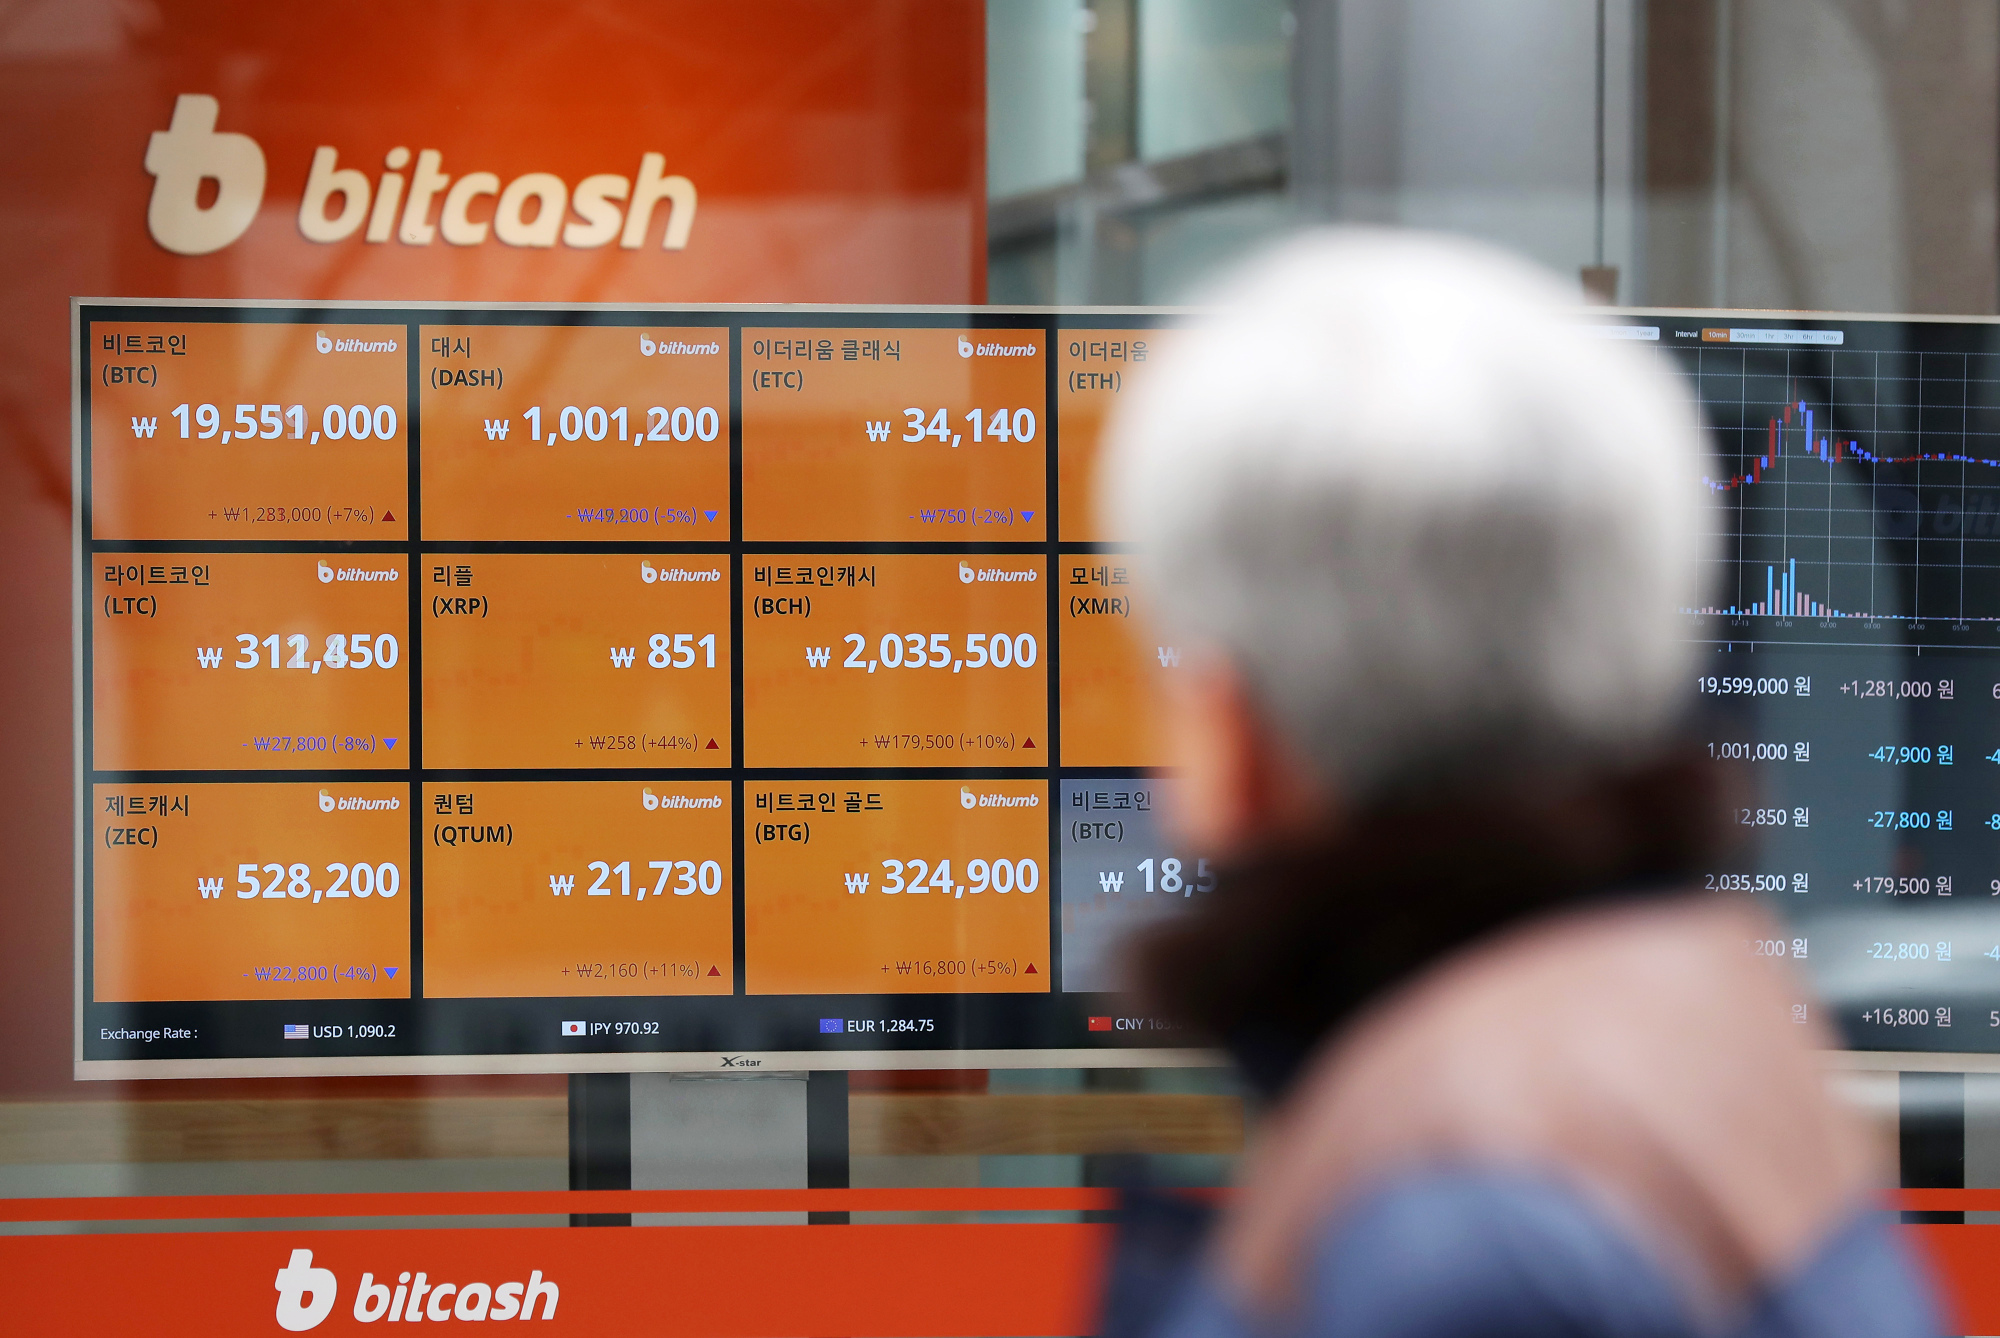 A pedestrian looks at a monitor showing the prices of virtual currencies at the Bithumb exchange office in Seoul, South Korea.